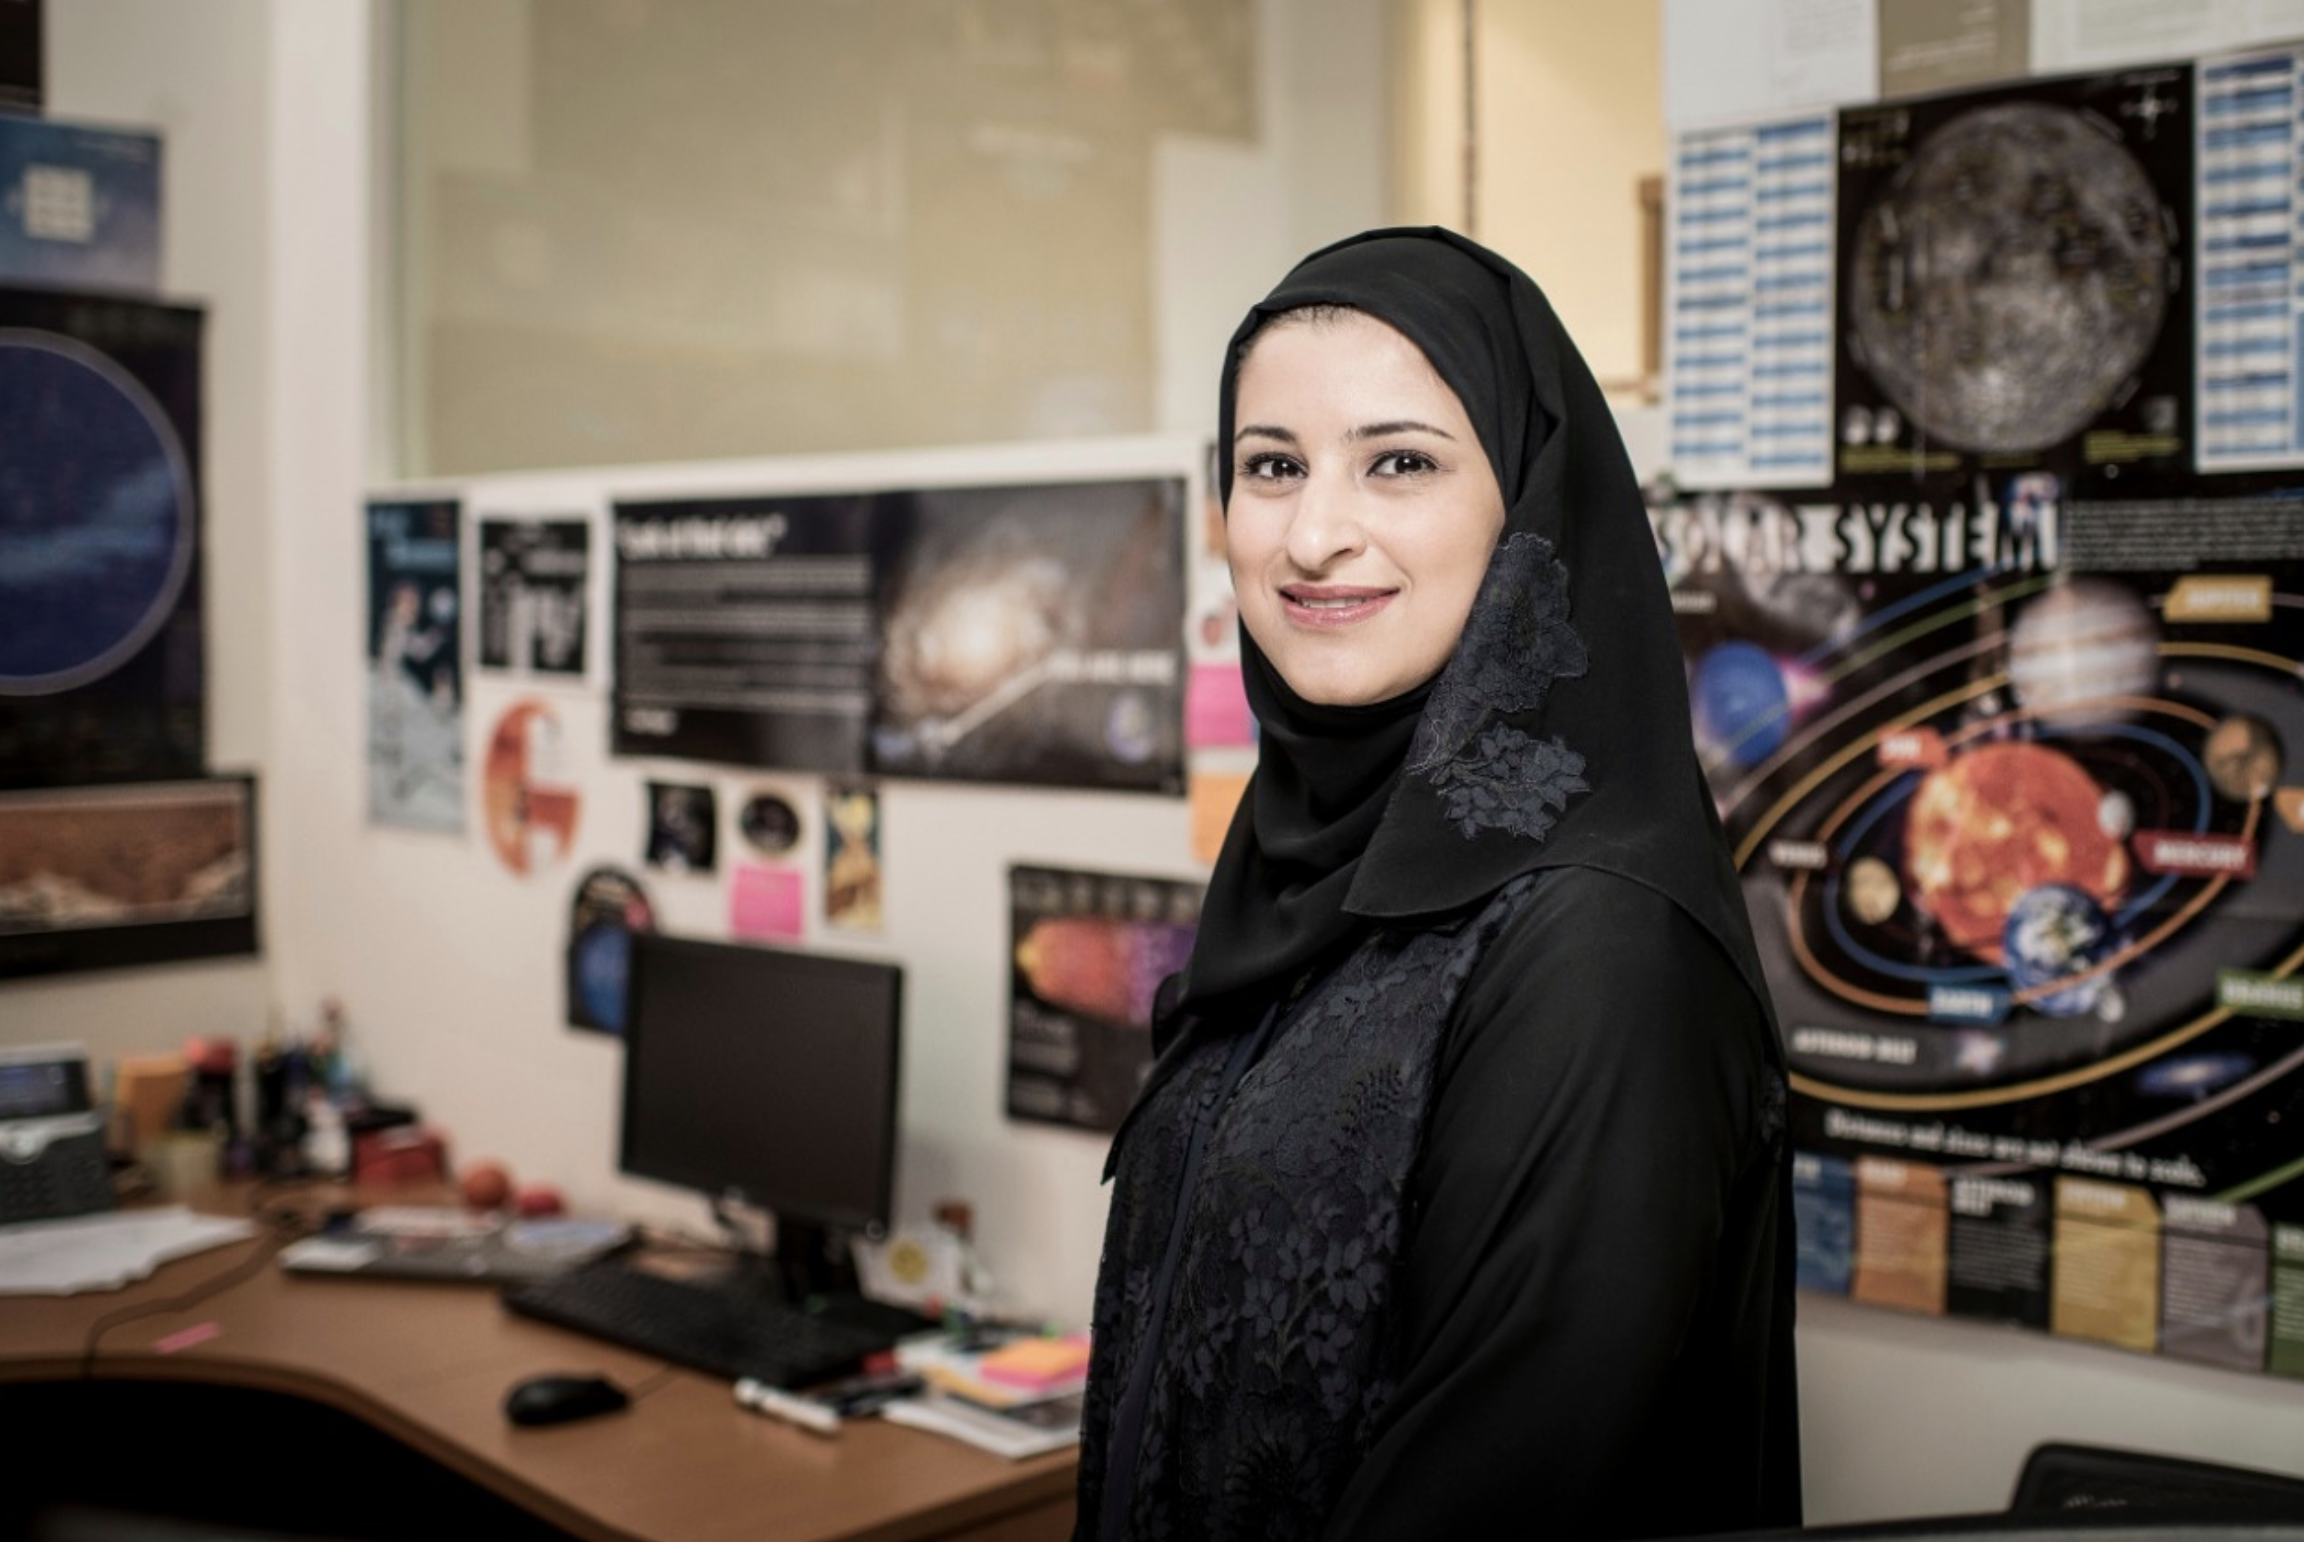 Next for UAE's Mars team: Making space for private sector - Khaleej Times